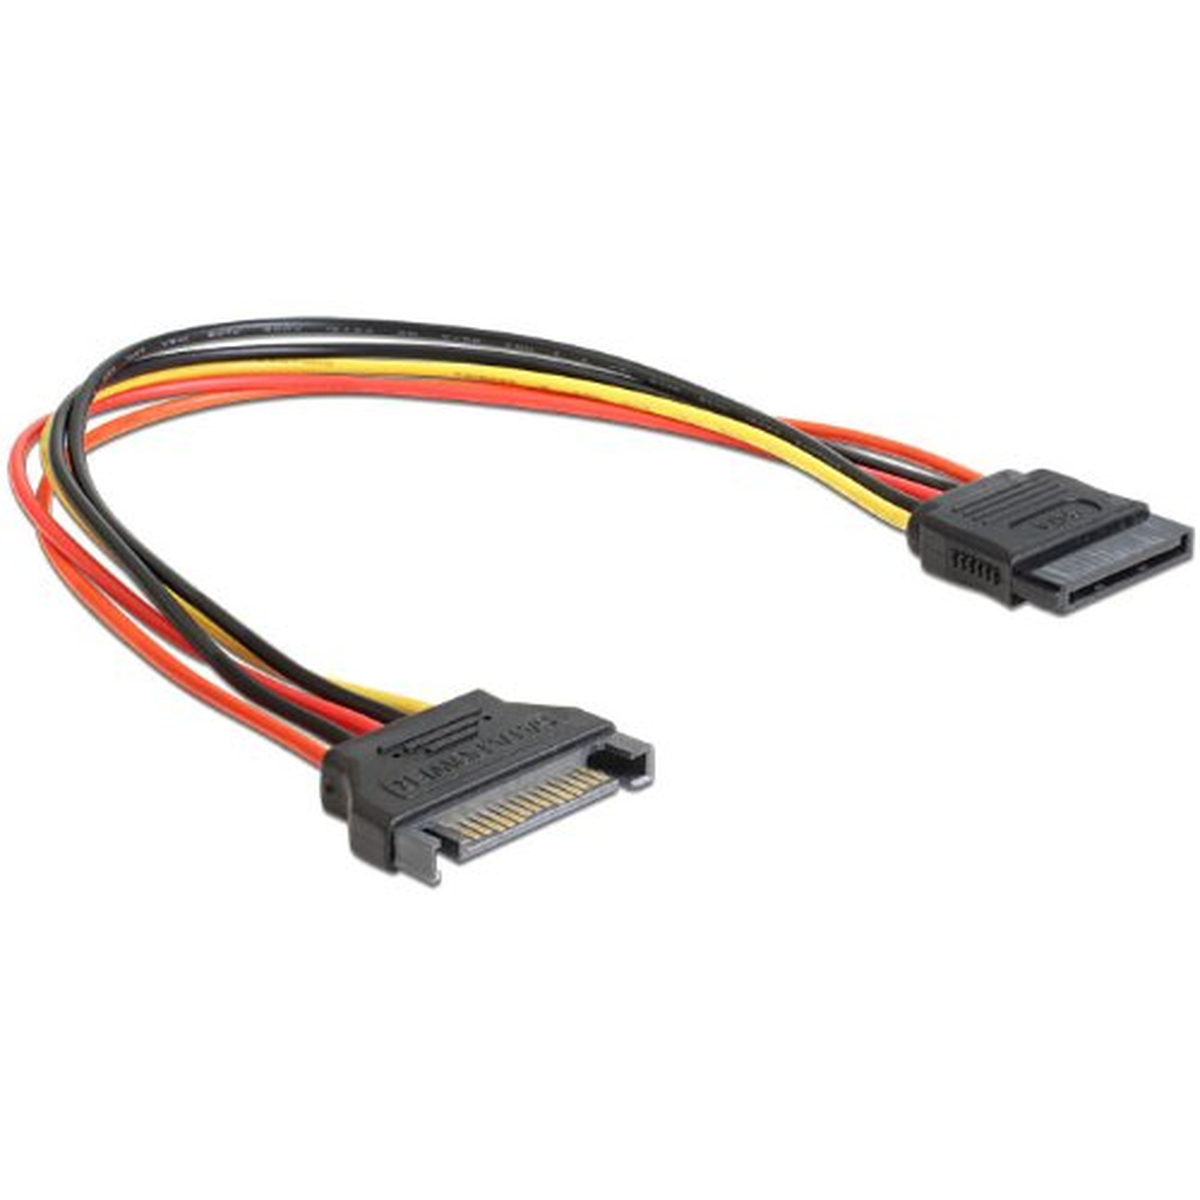 DeLOCK Kabel Power SATA 15pin St -> SATA 15pin Bu